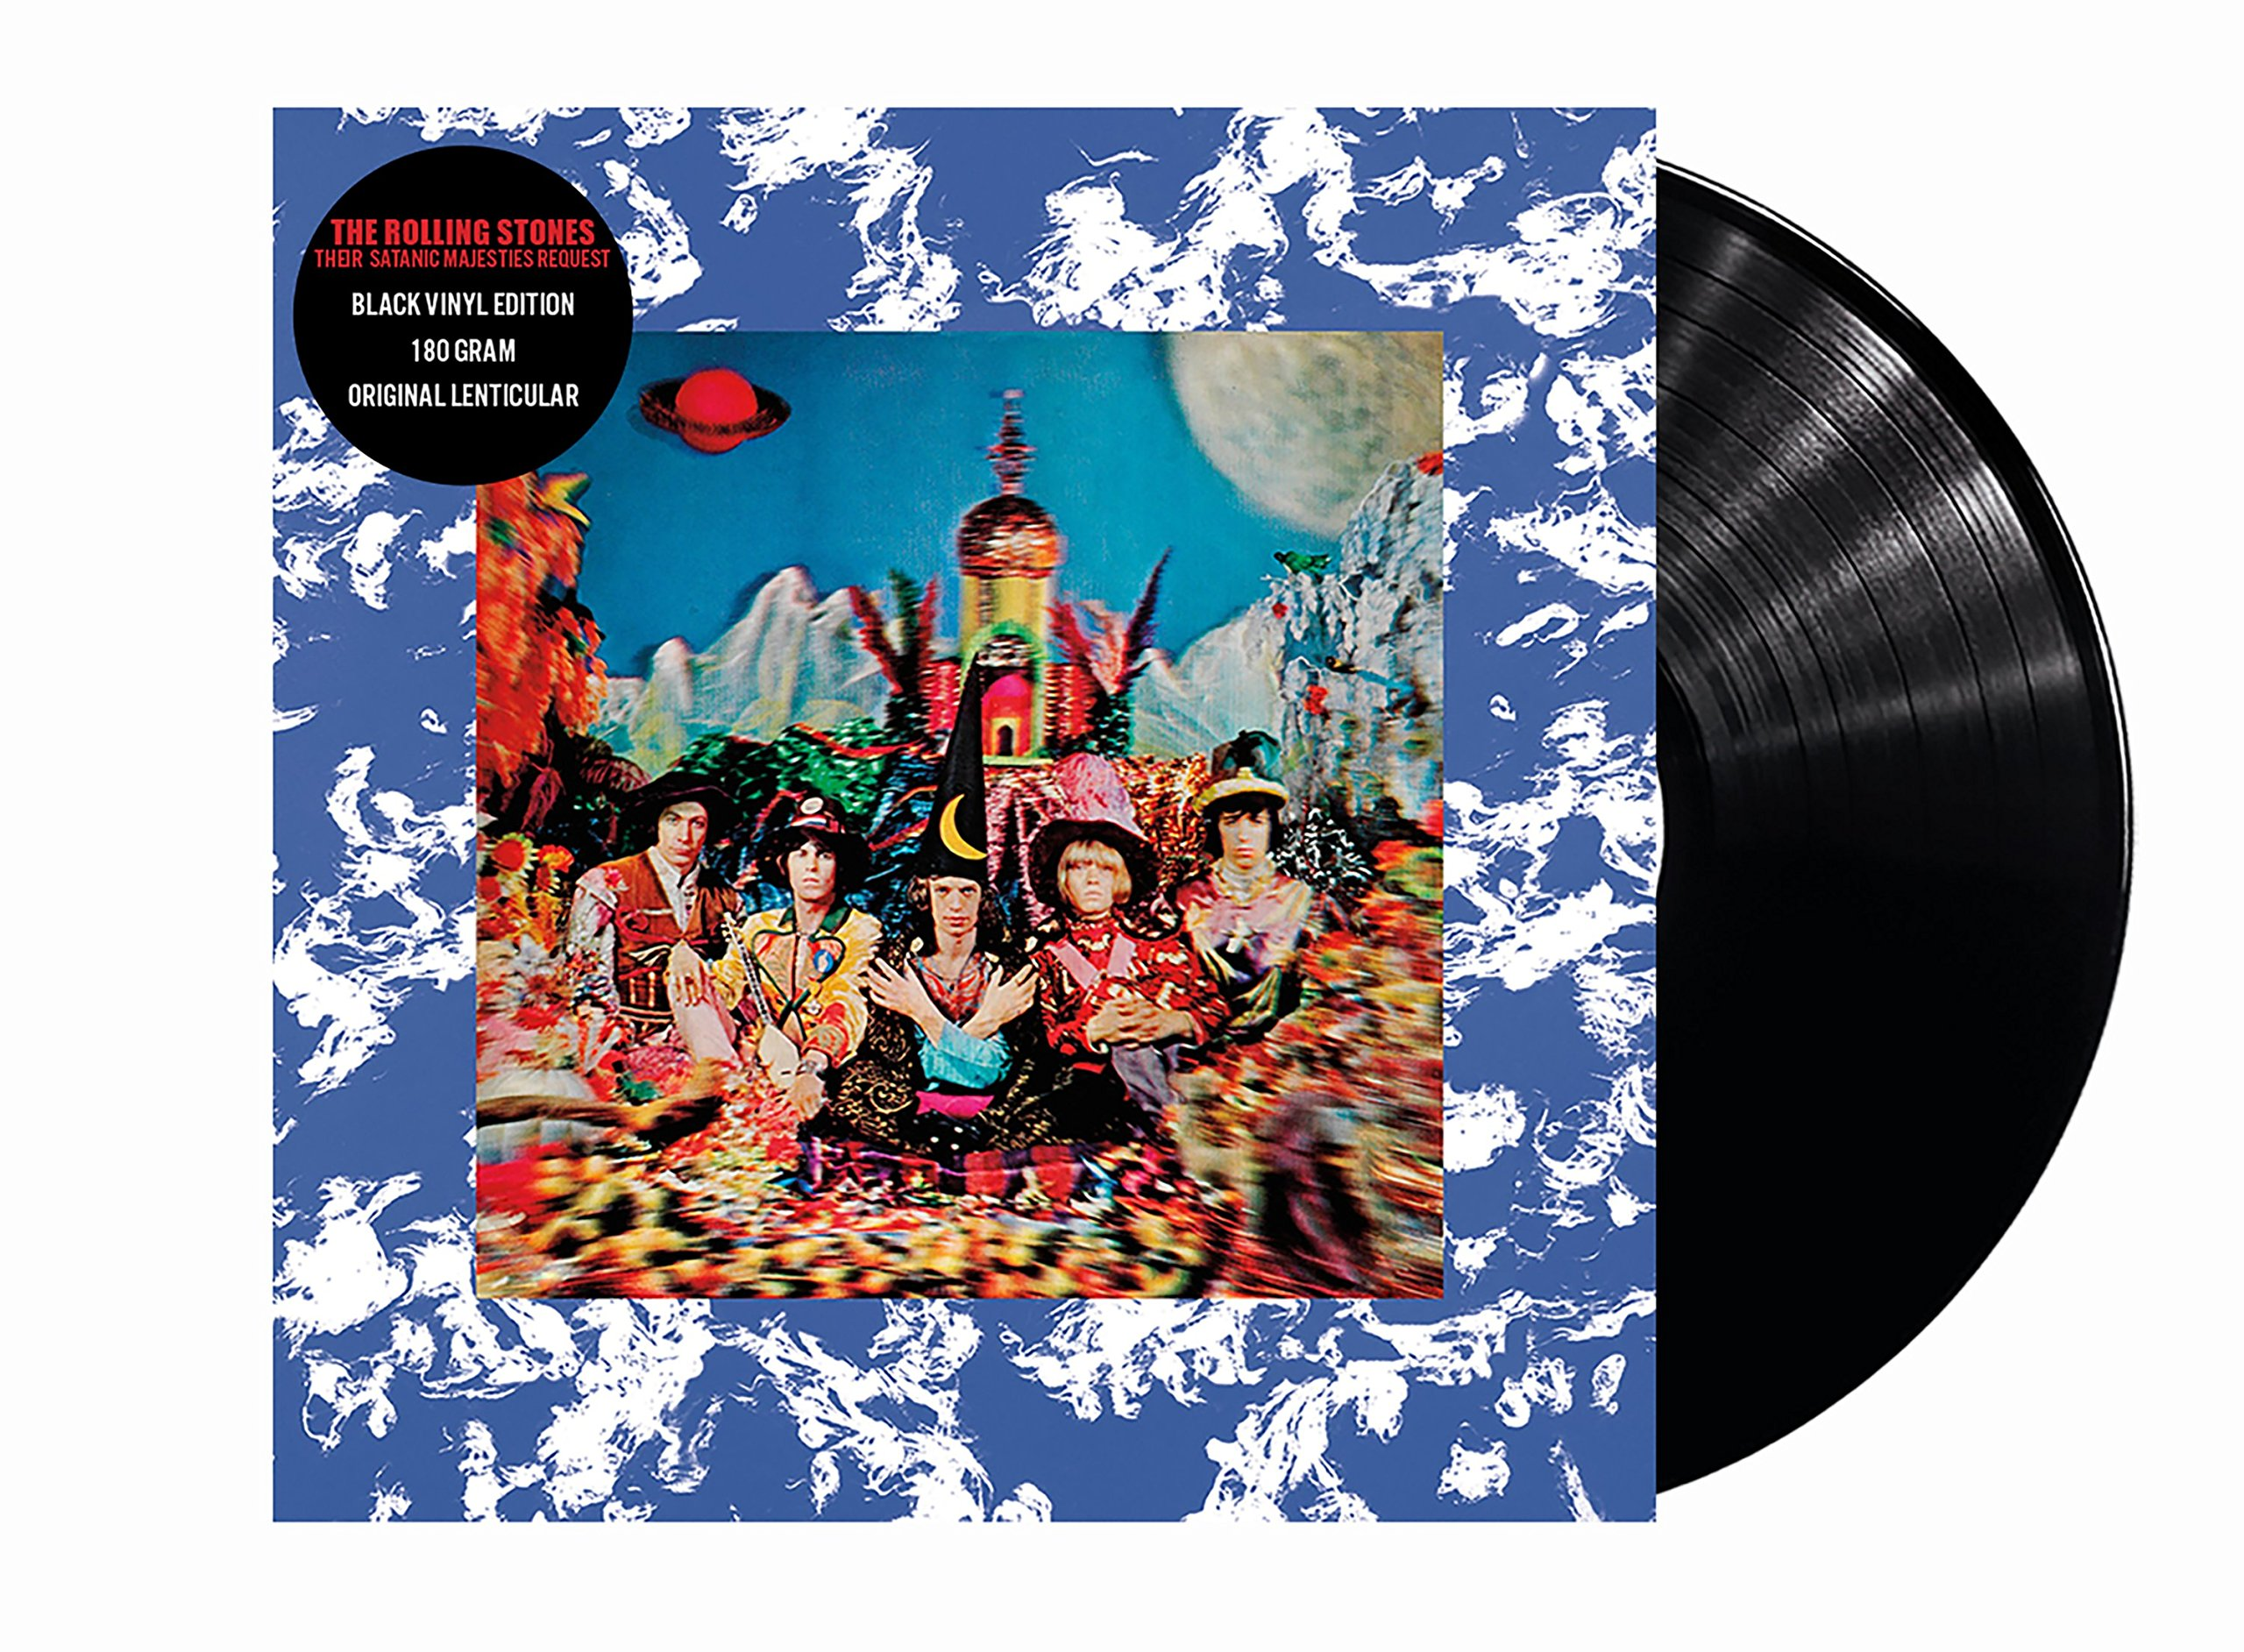 Vinilo : The Rolling Stones - Their Satanic Majesties Request (Limited Edition, 180 Gram Vinyl)